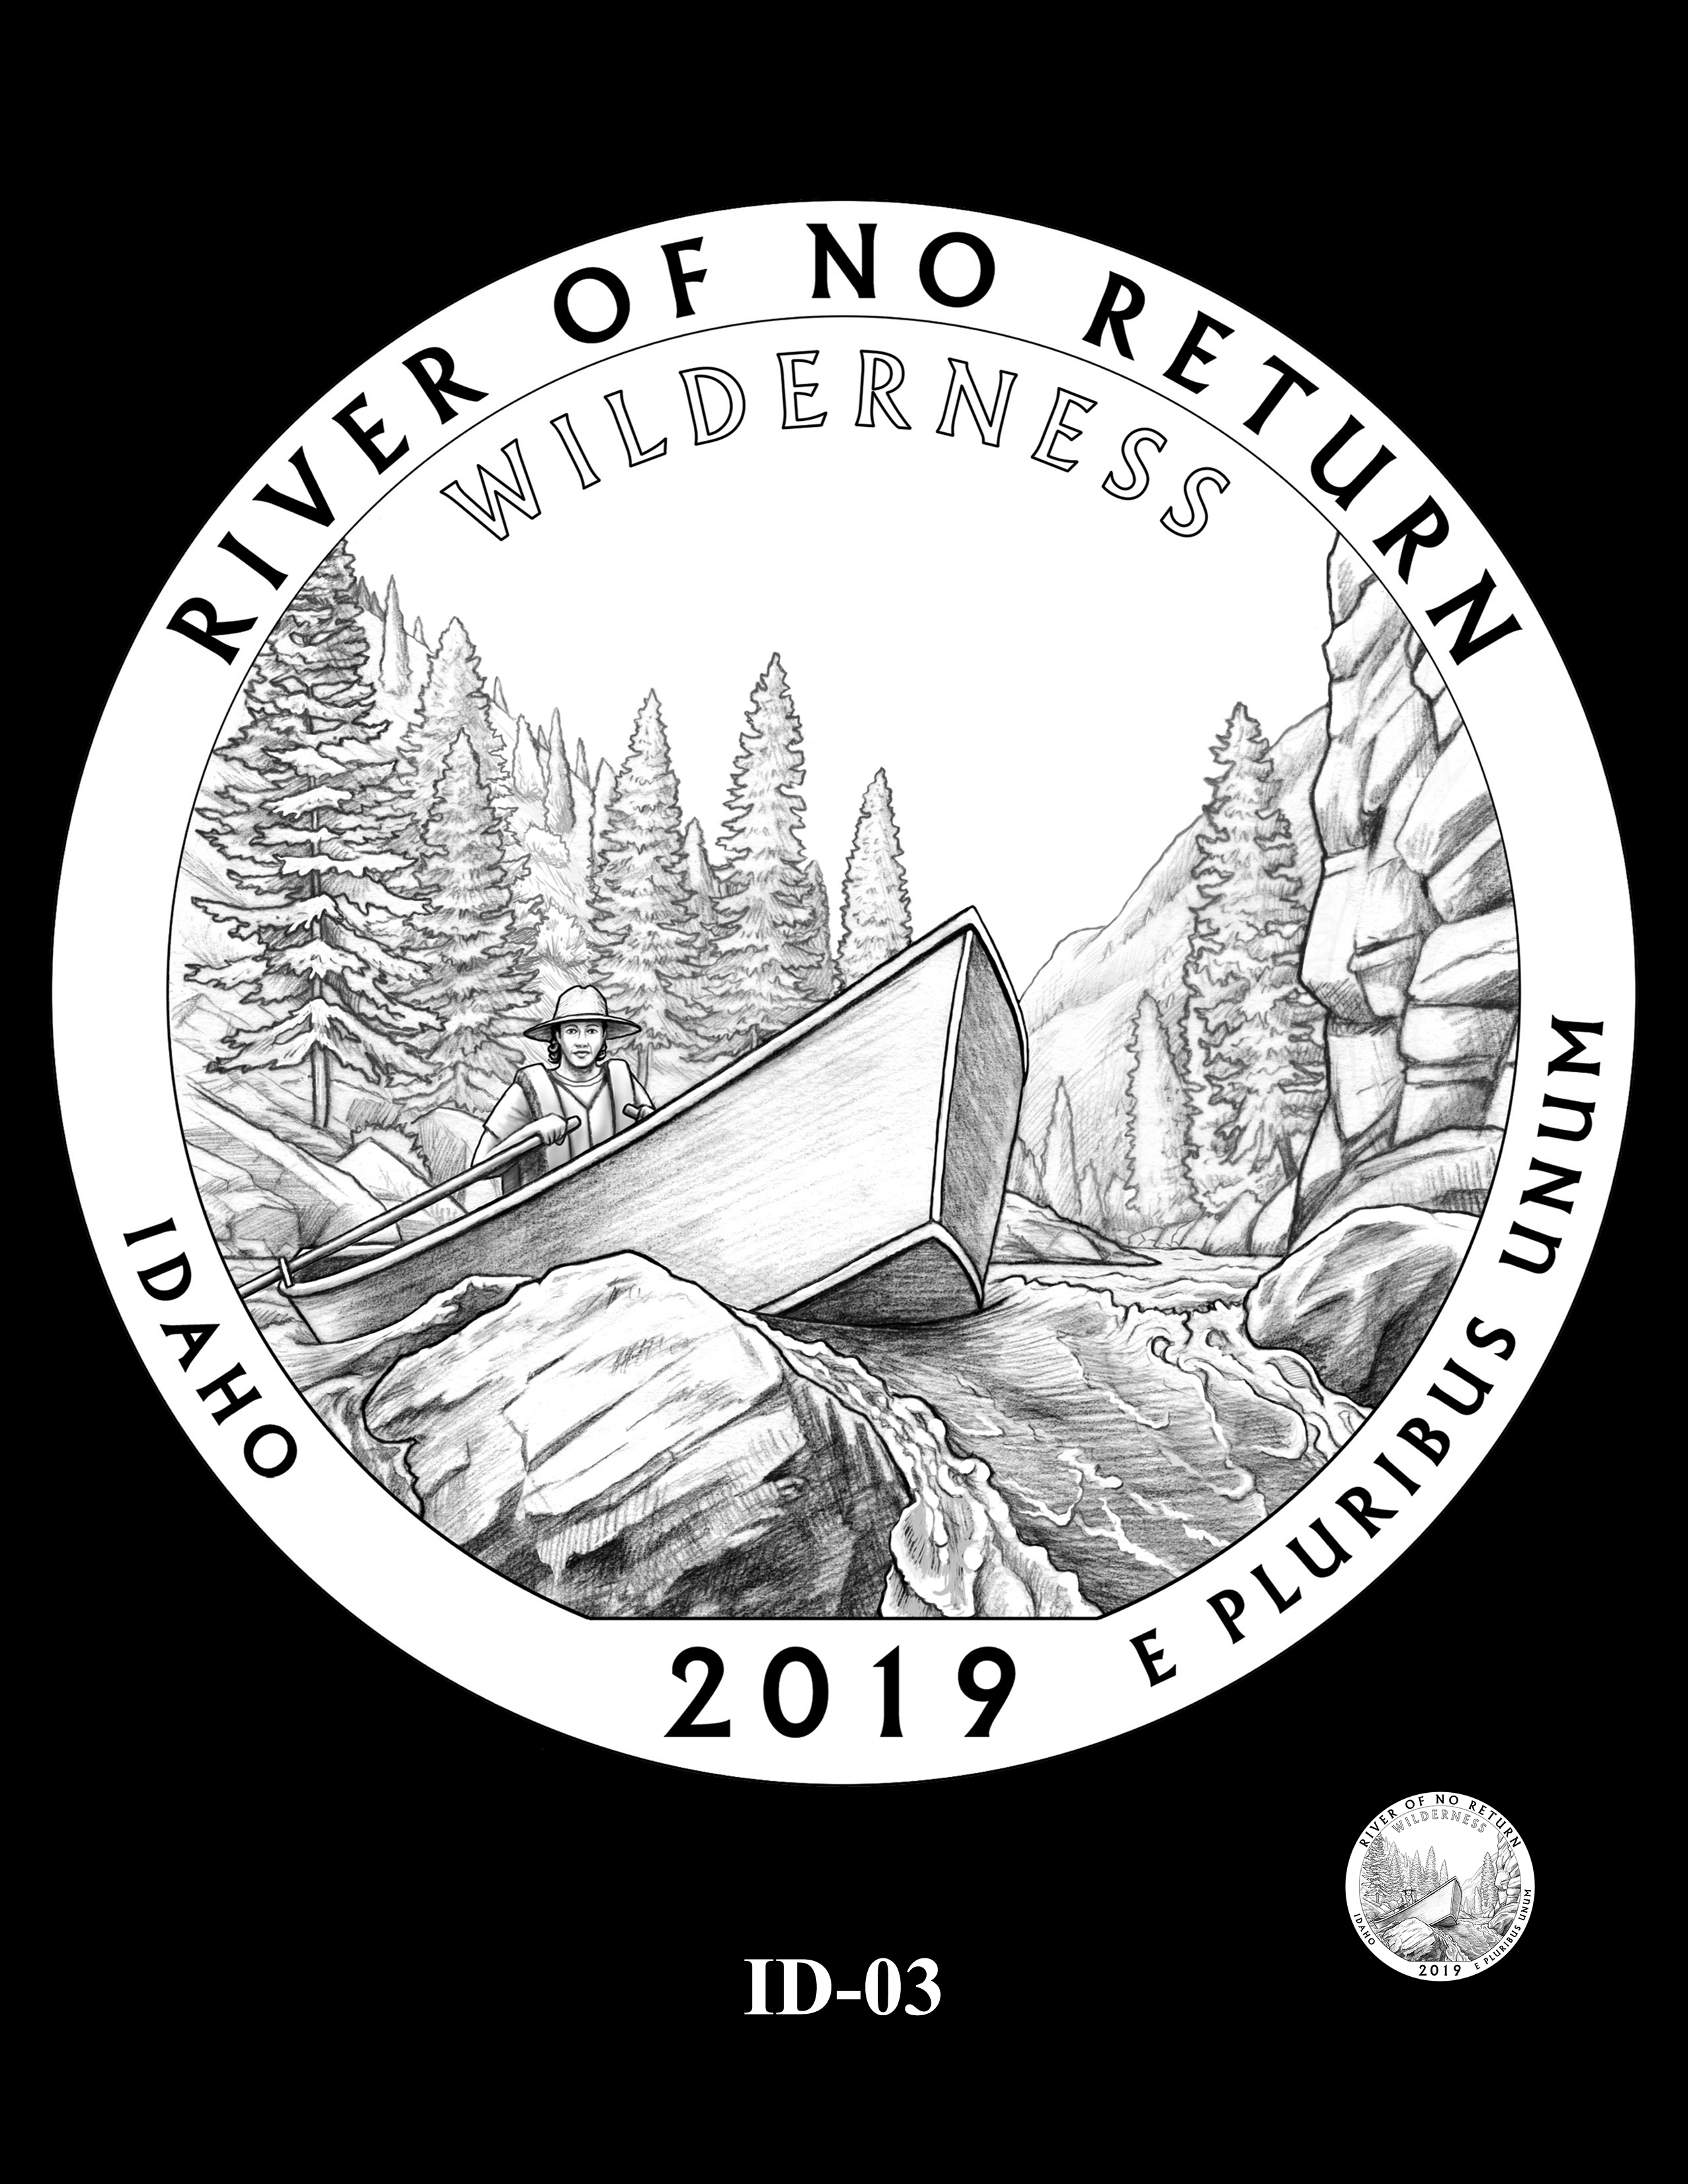 ID-03 -- 2019 America the Beautiful Quarters® Program